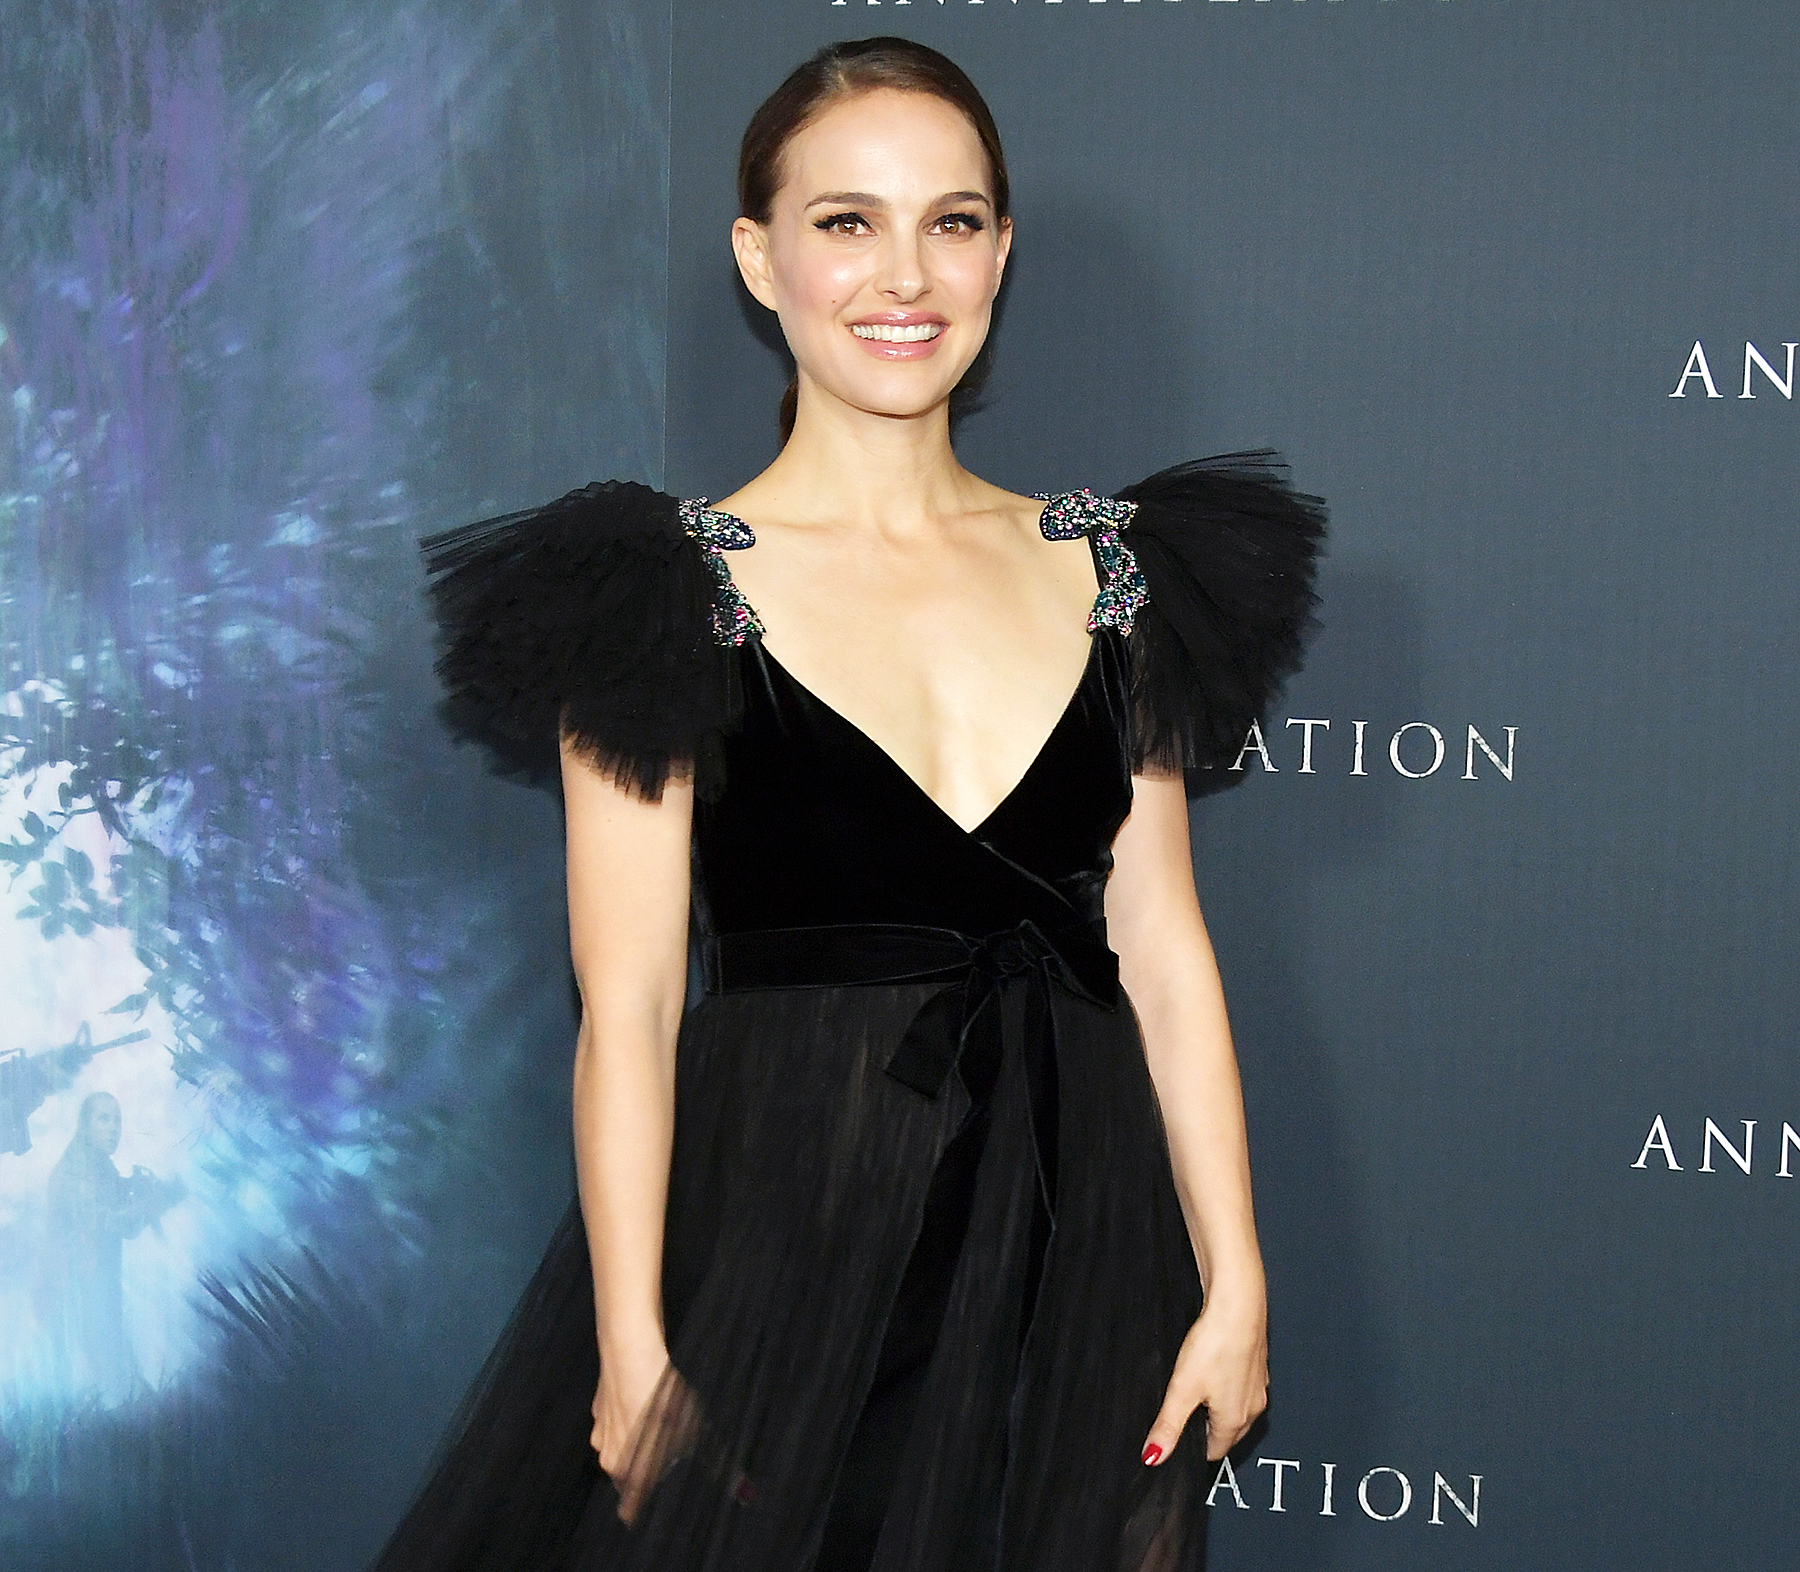 Natalie Portman regrets signing petition to free Roman Polanski